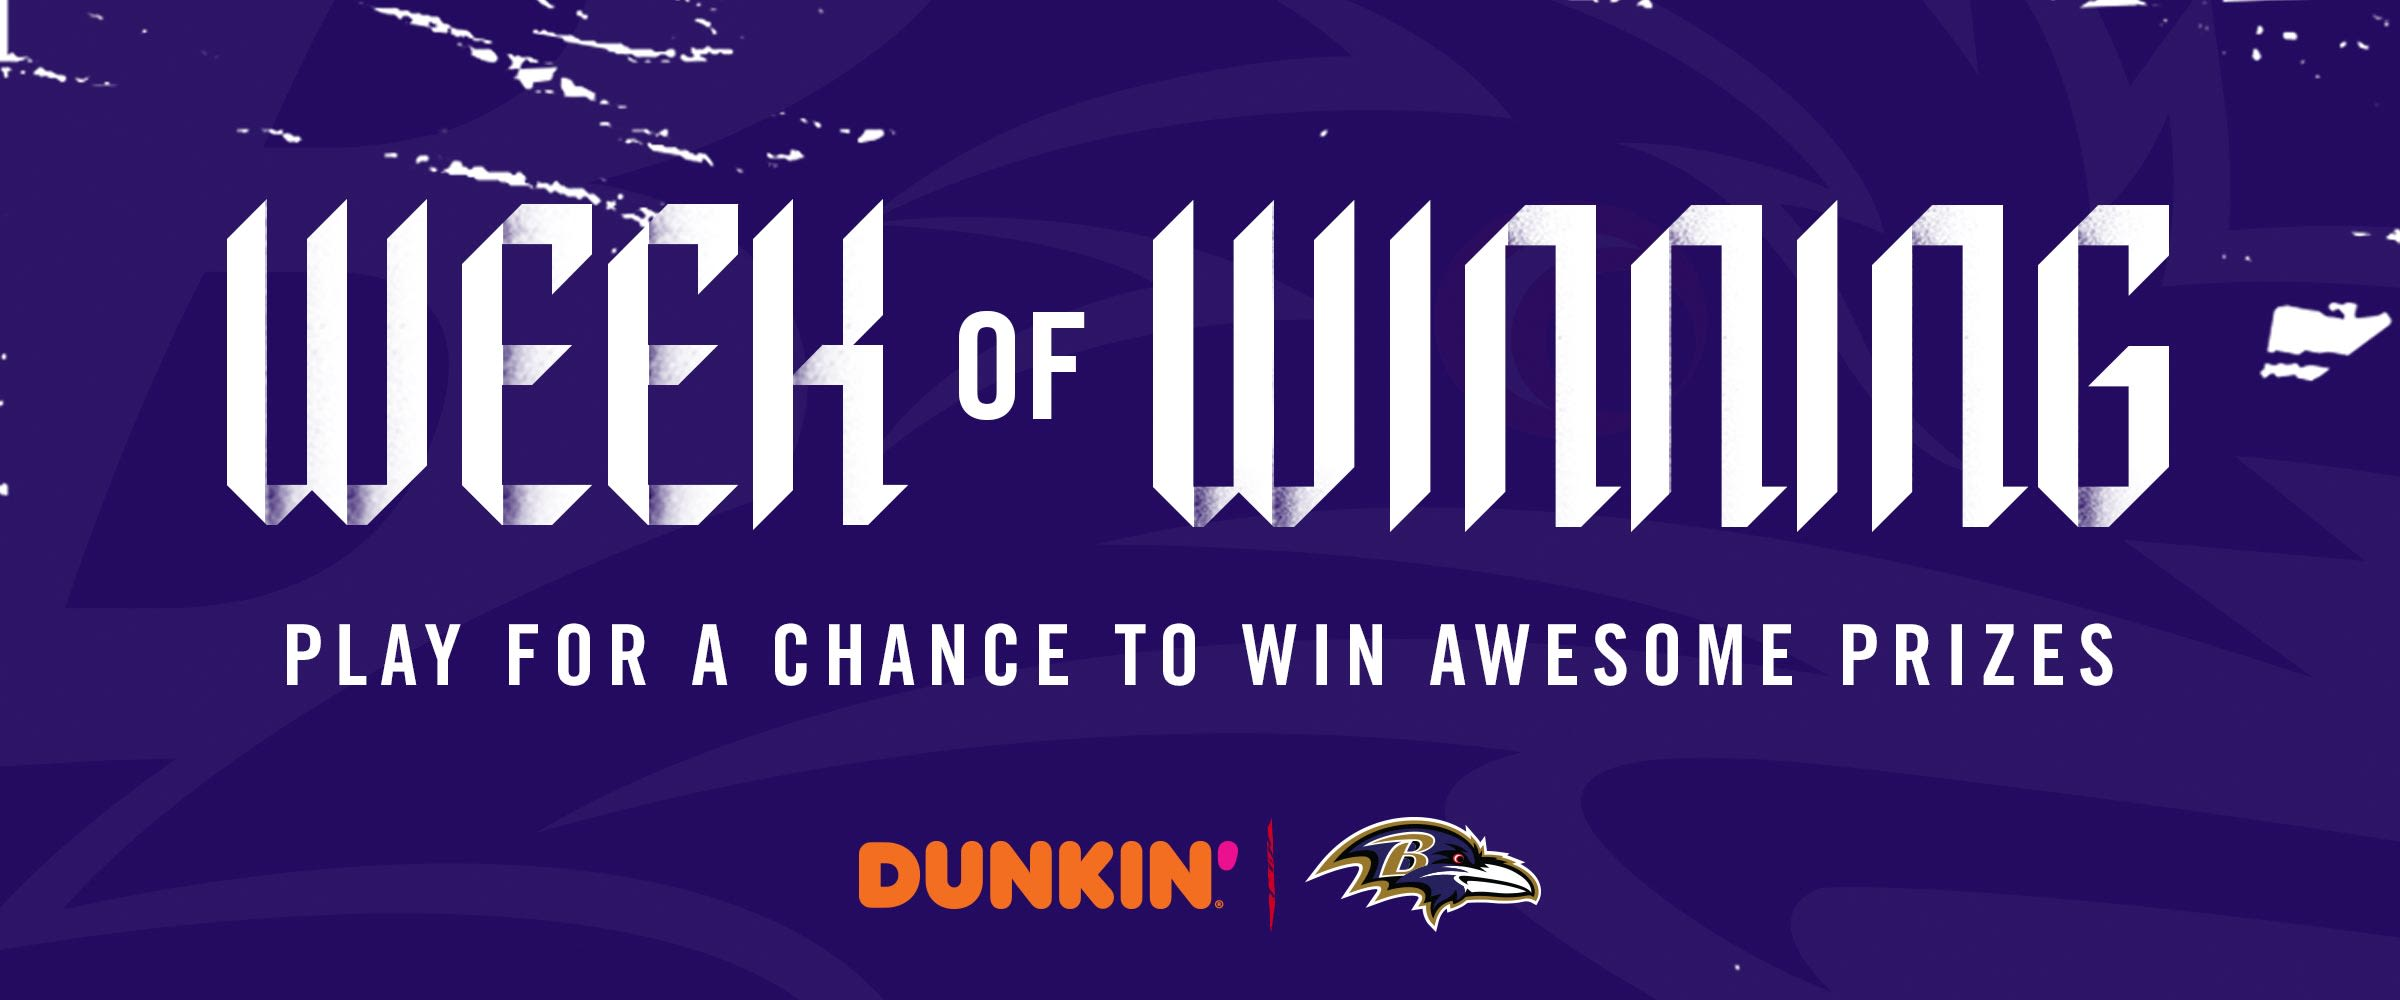 Kickoff Week of Winning presented by Dunkin'  Play for a chance to win awesome prizes